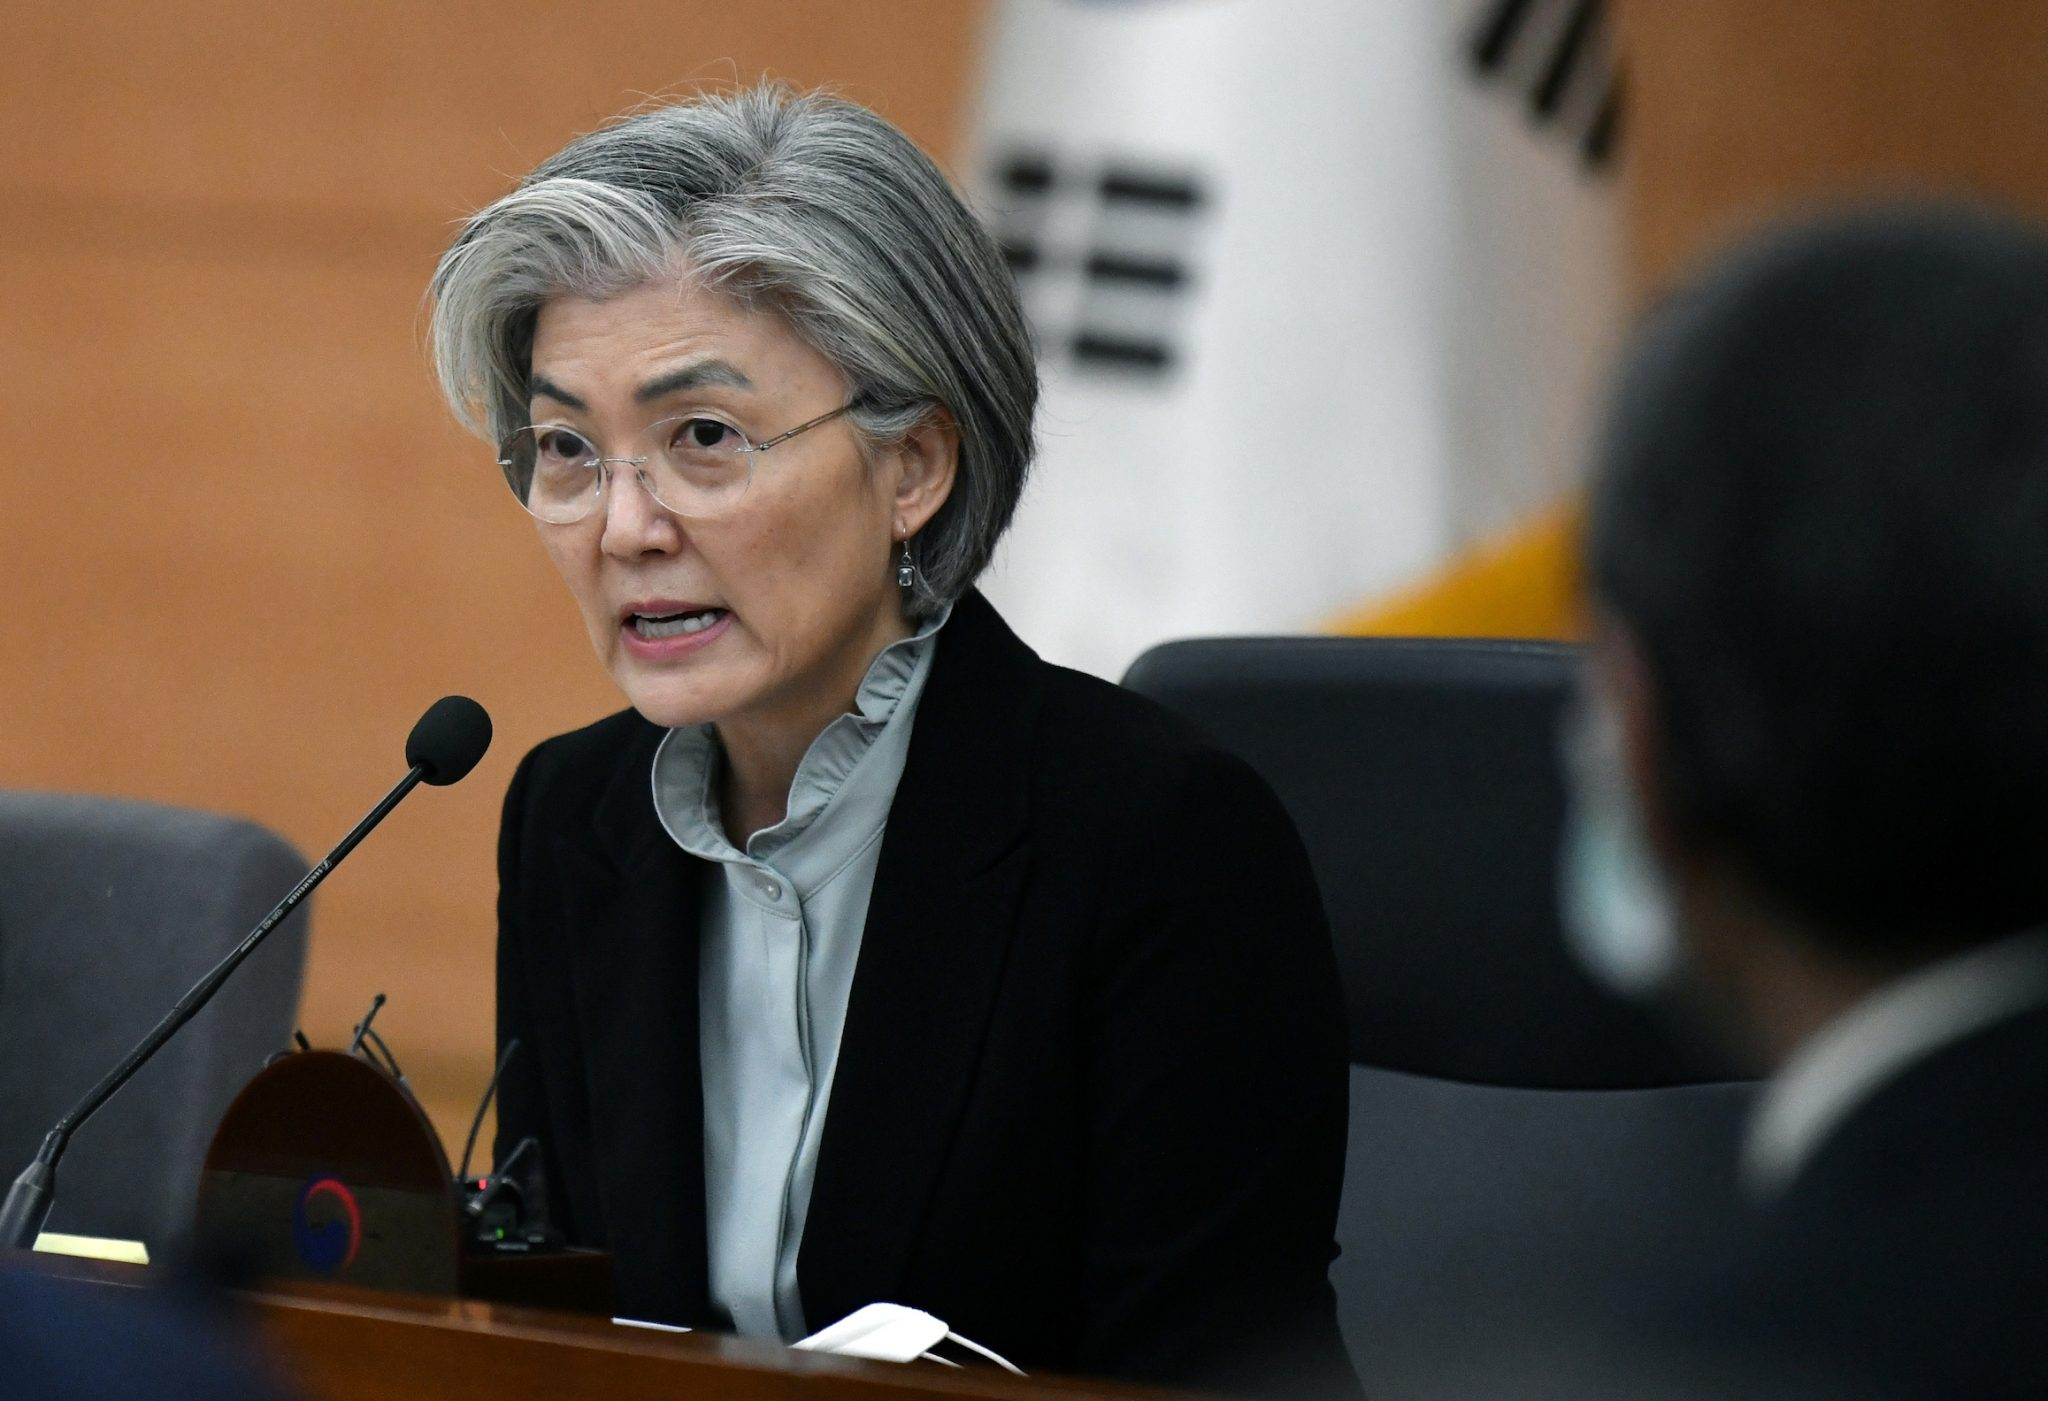 Kang Kyung-wha's legacy for South Korean women